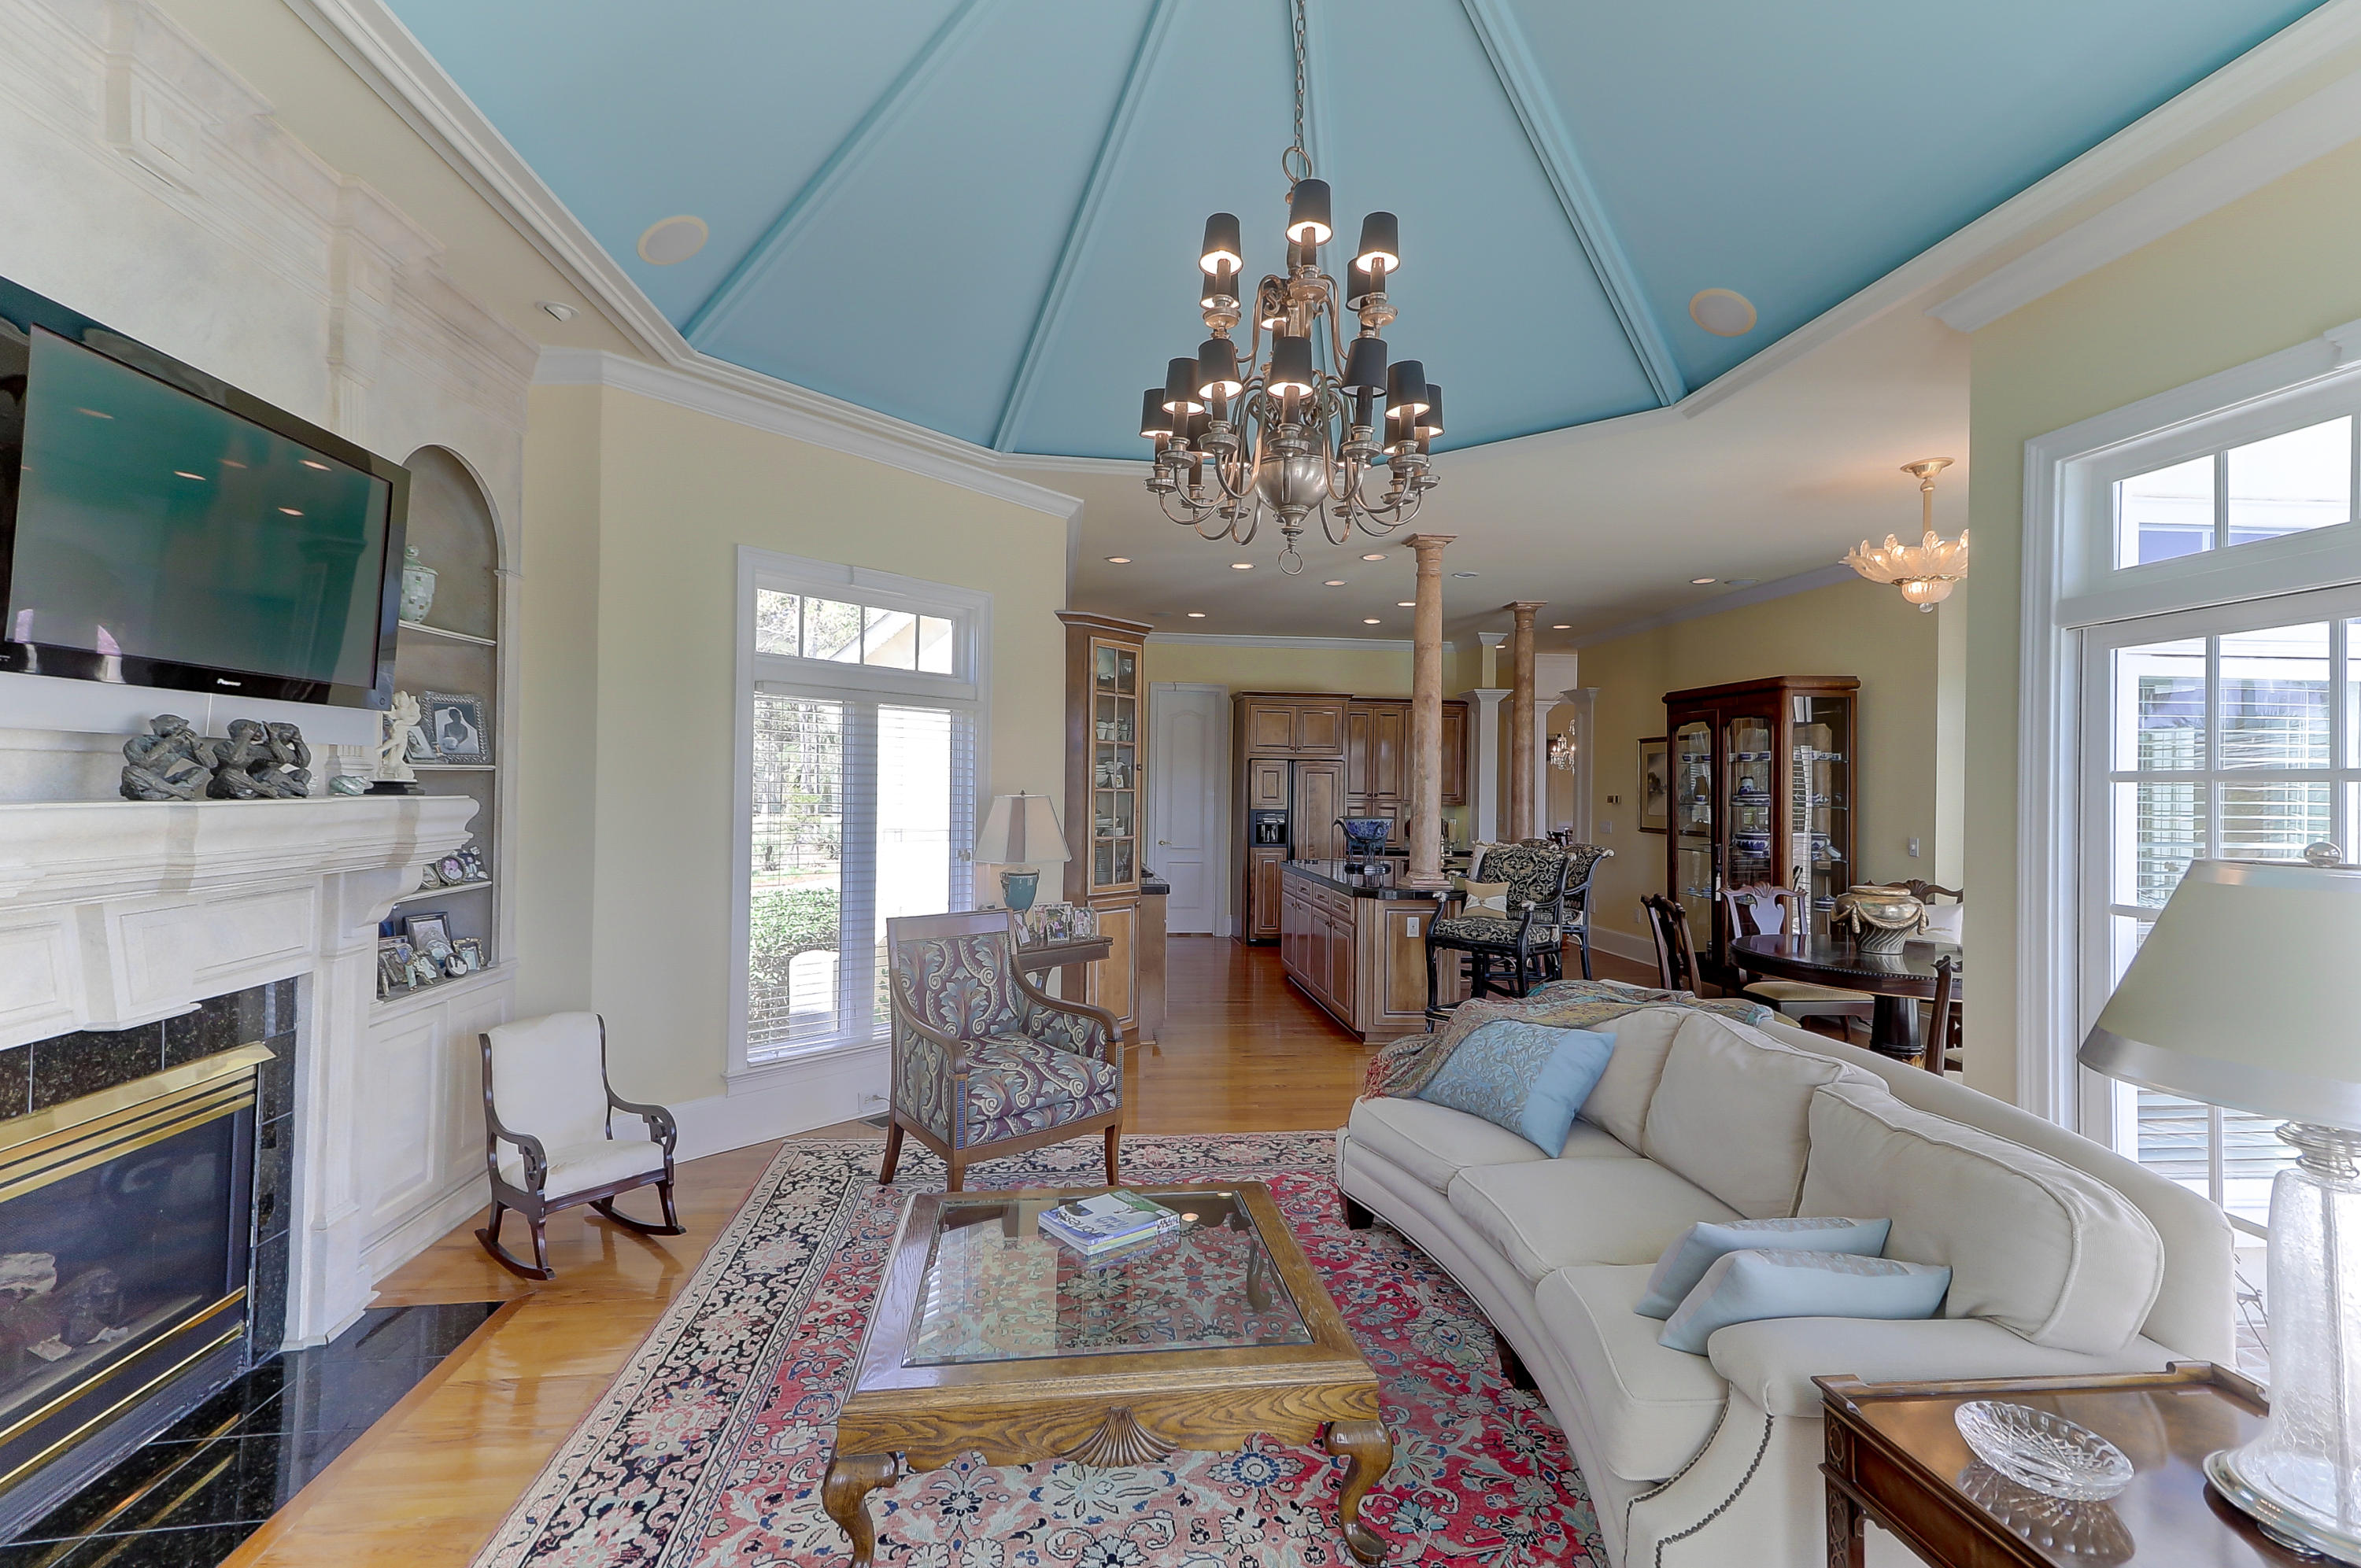 Dunes West Homes For Sale - 2019 Shell Ring, Mount Pleasant, SC - 10